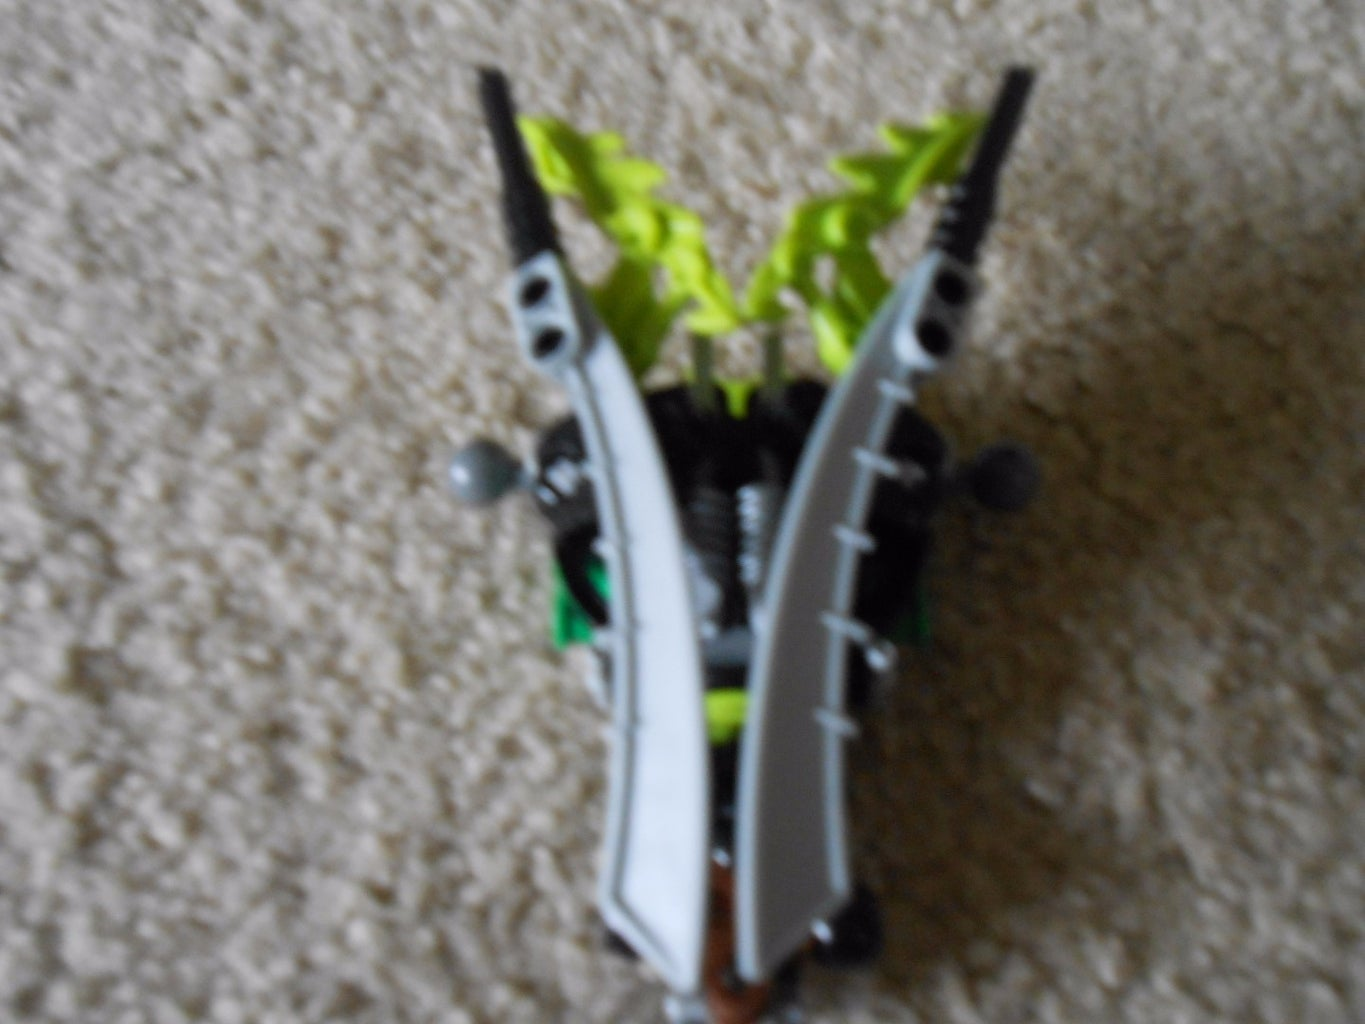 The Rest of the Back and Weapons